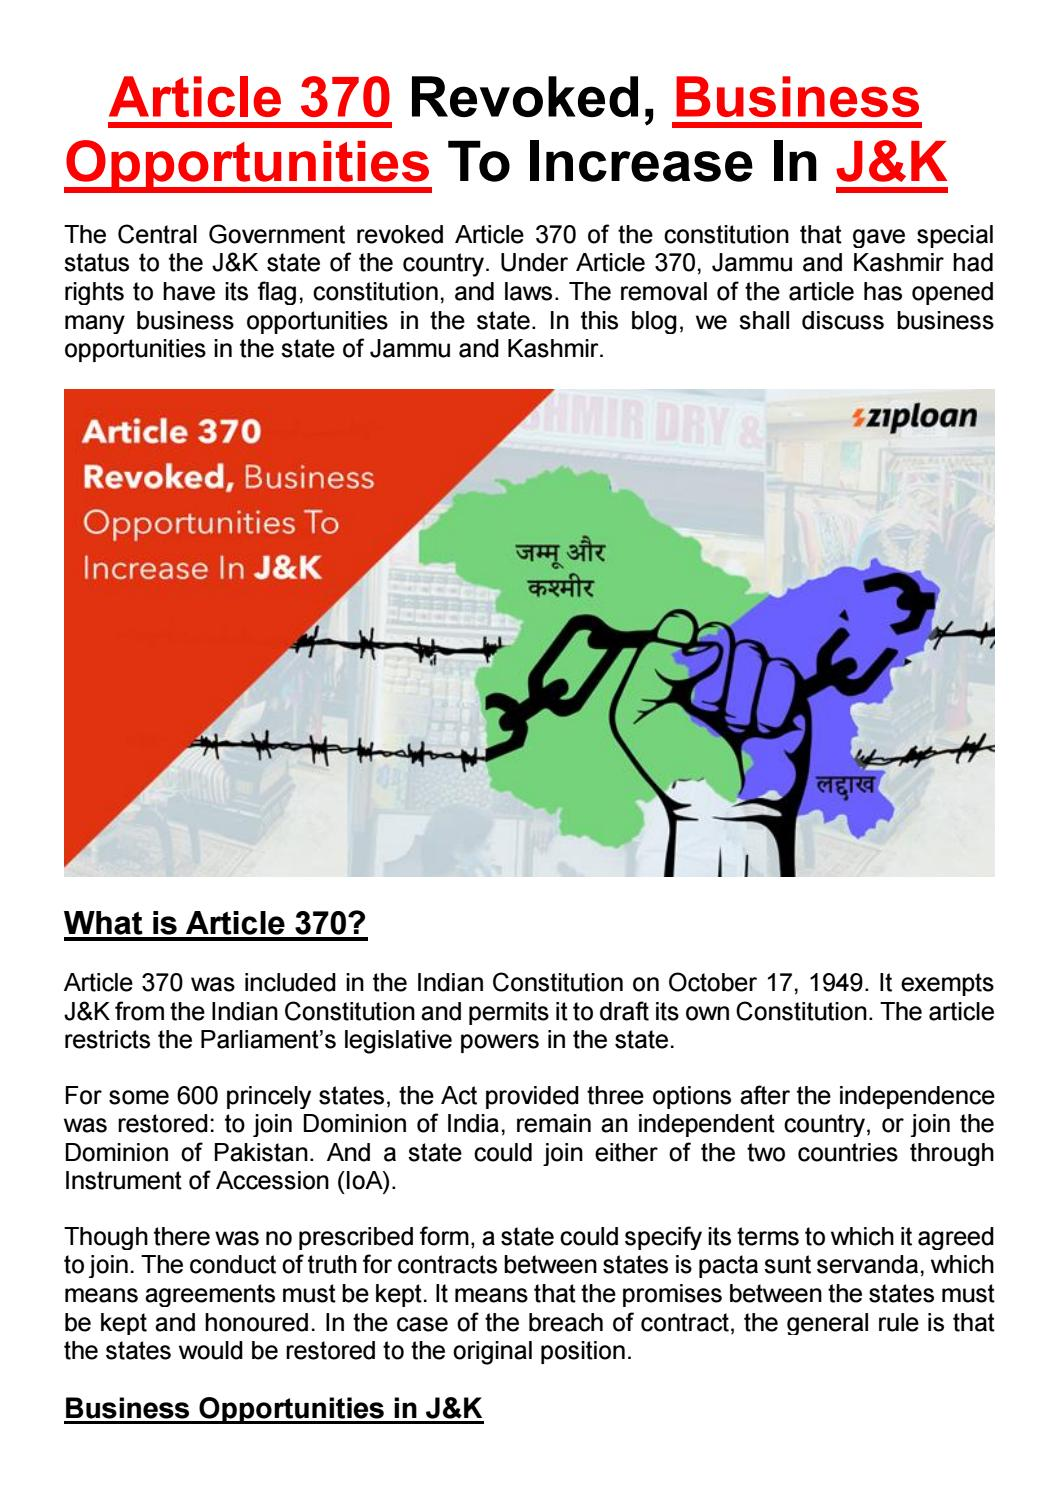 Article 370 Revoked, Business Opportunities To Increase In